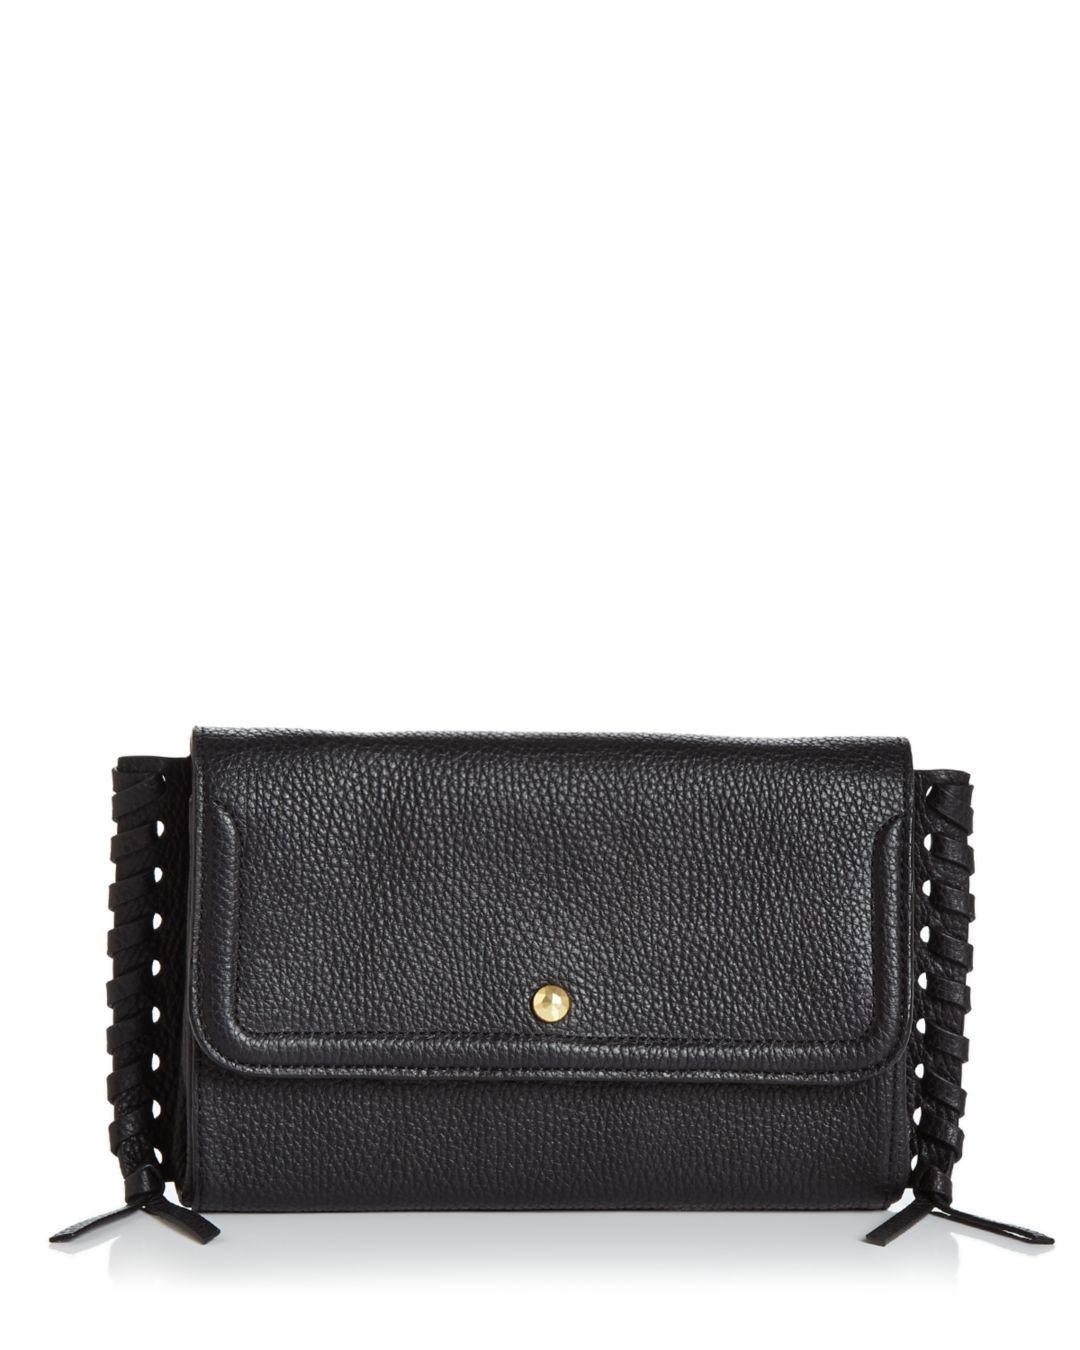 153ed8b99 Annabel Ingall Emma Oversize Whipstitch Leather Clutch in Black - Save 70%  - Lyst